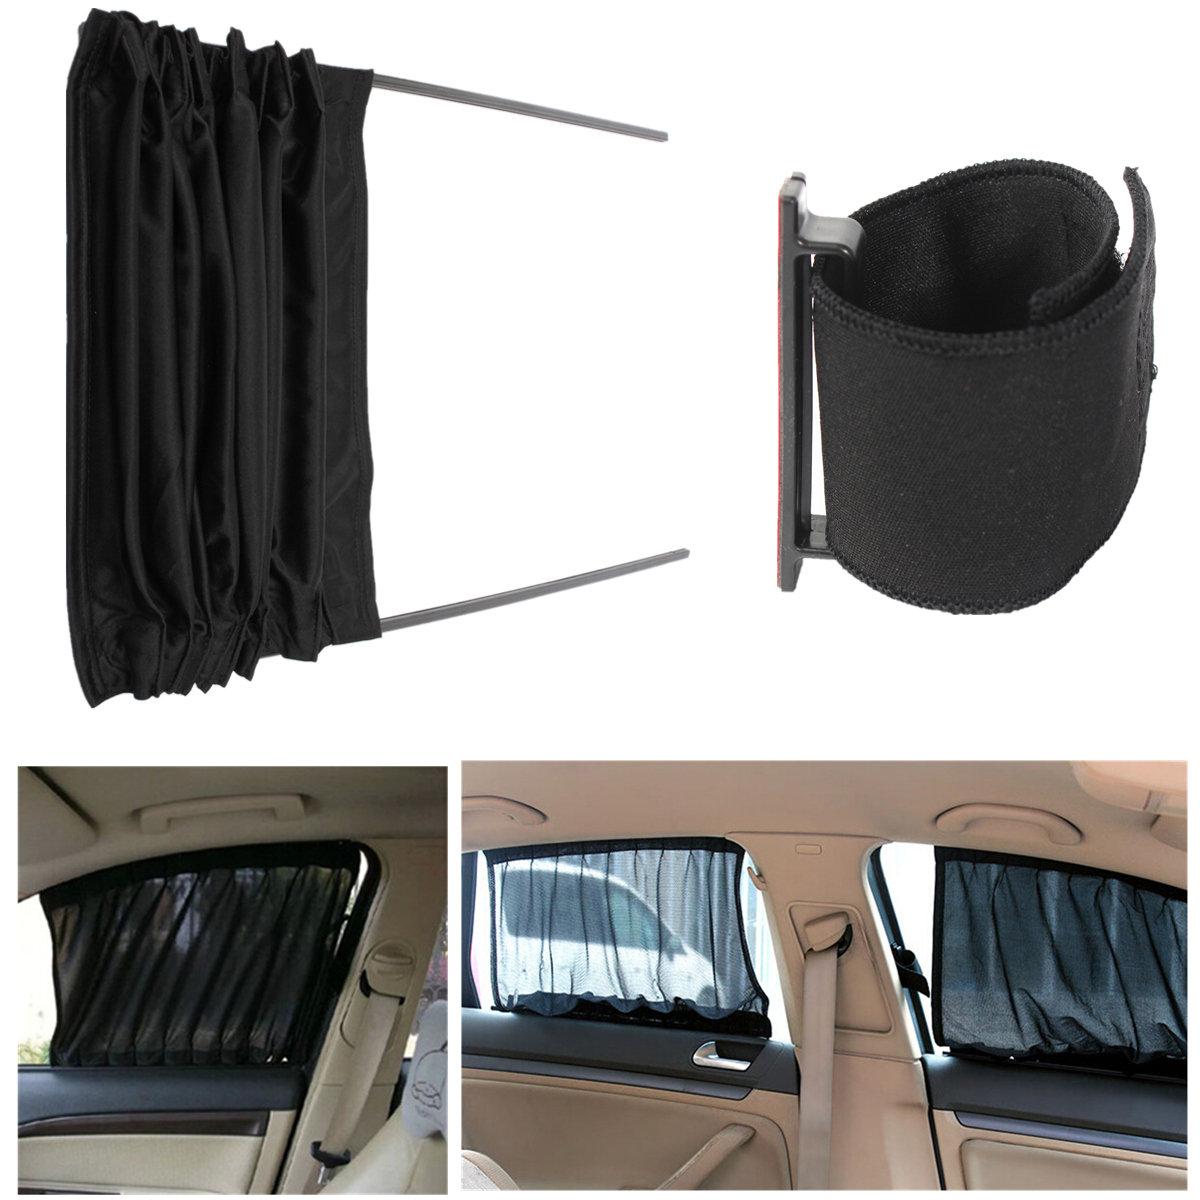 2pcs 70cm mesh l auto rear valance uv sunshade drape visor car window curtain alex nld. Black Bedroom Furniture Sets. Home Design Ideas